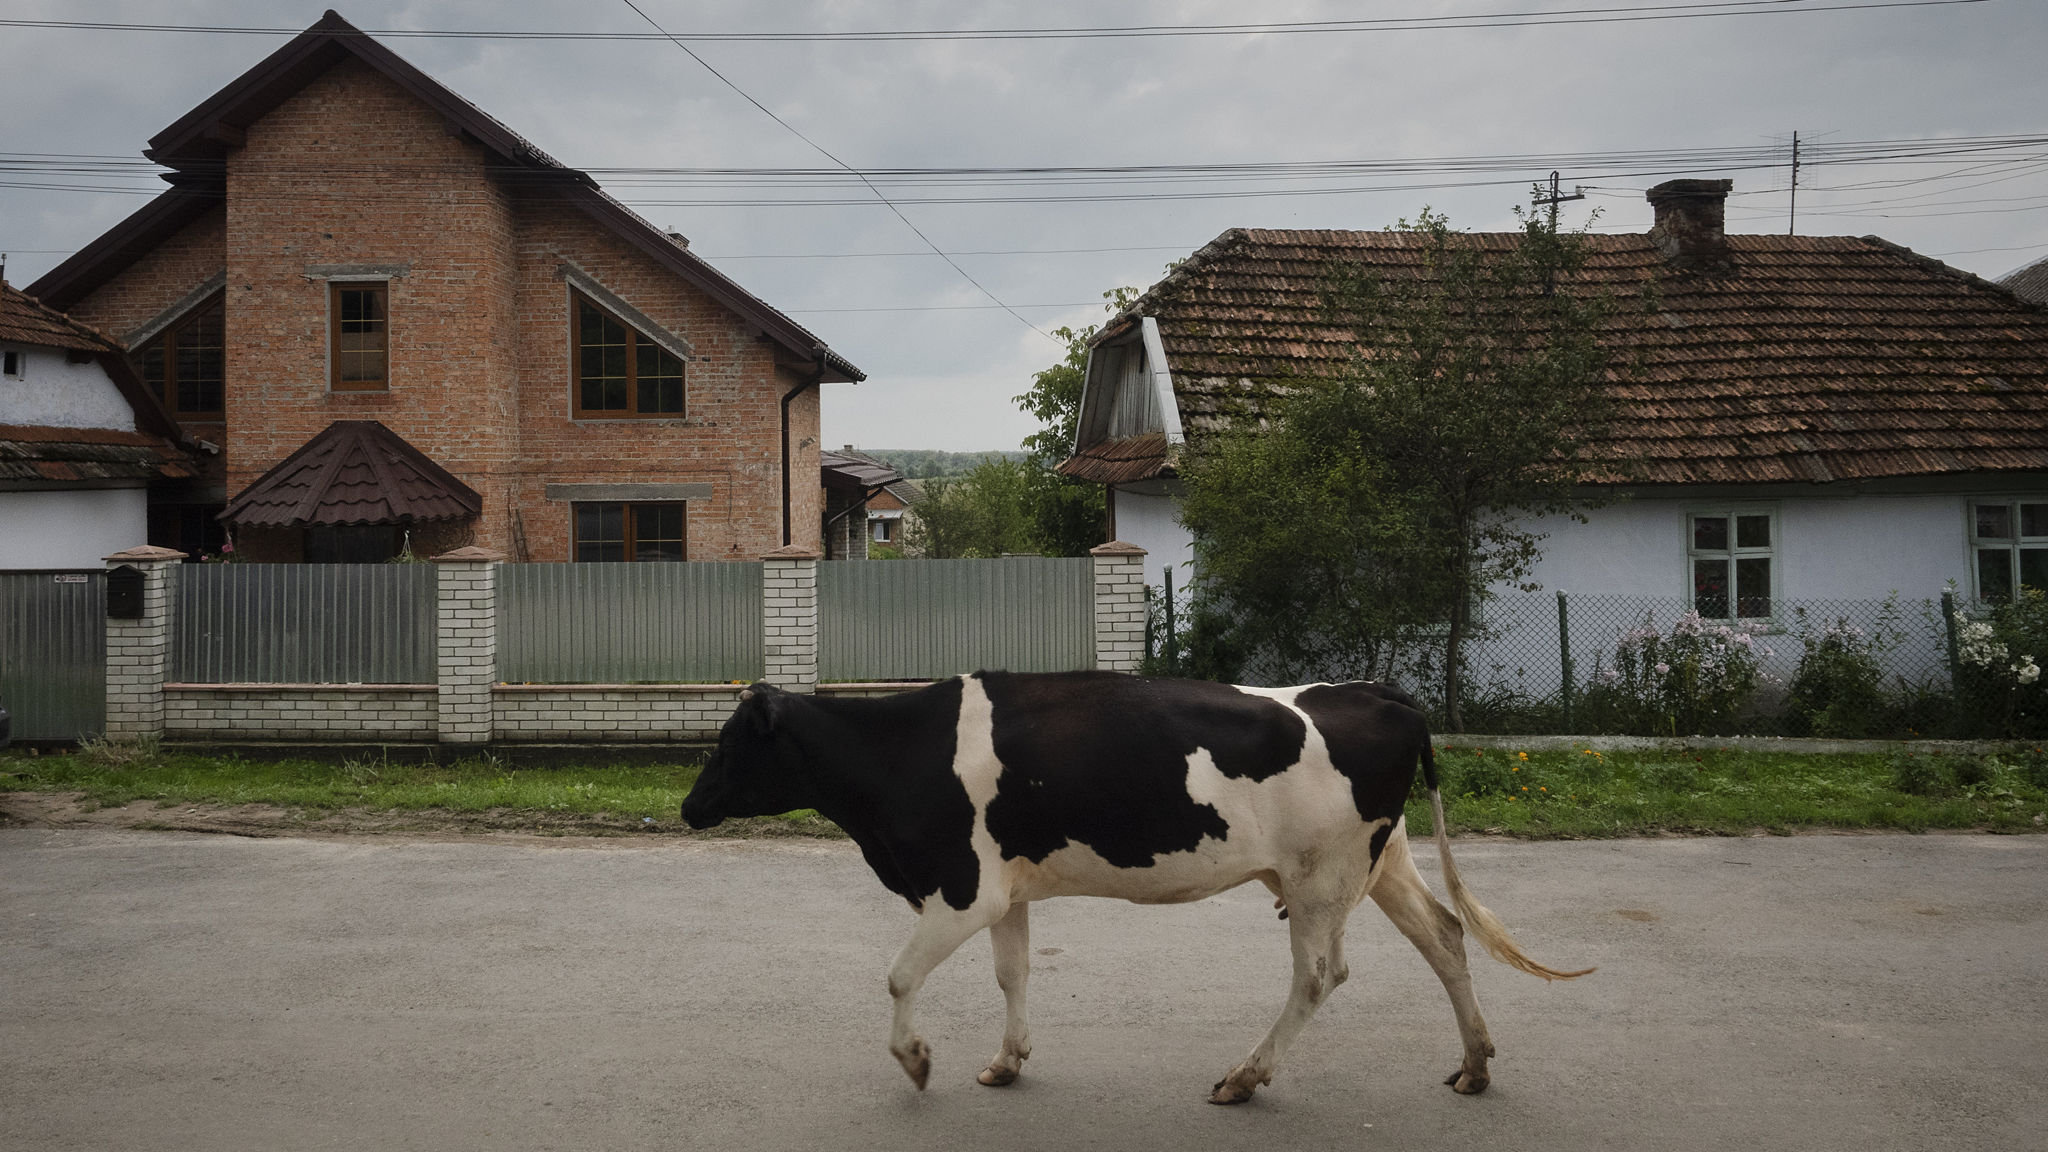 Ukraine's workers abroad fuel property boom back home